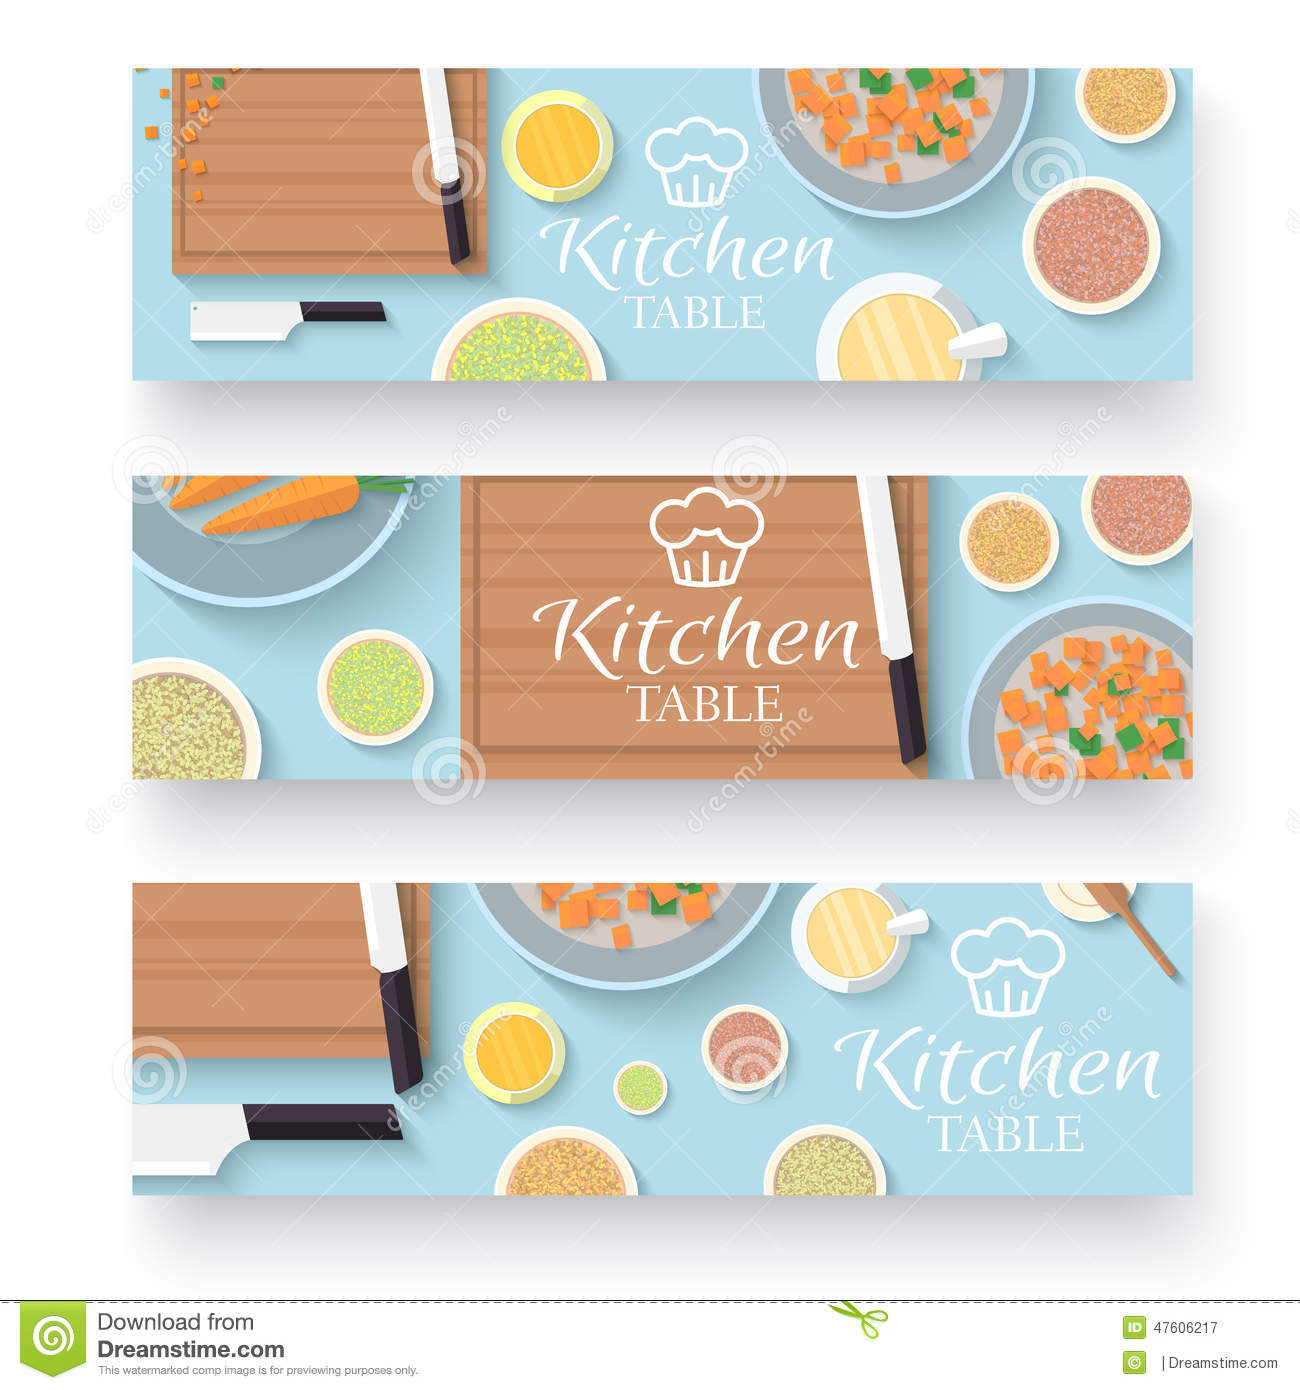 Flat Kitchen Table For Cooking In House Banners Stock